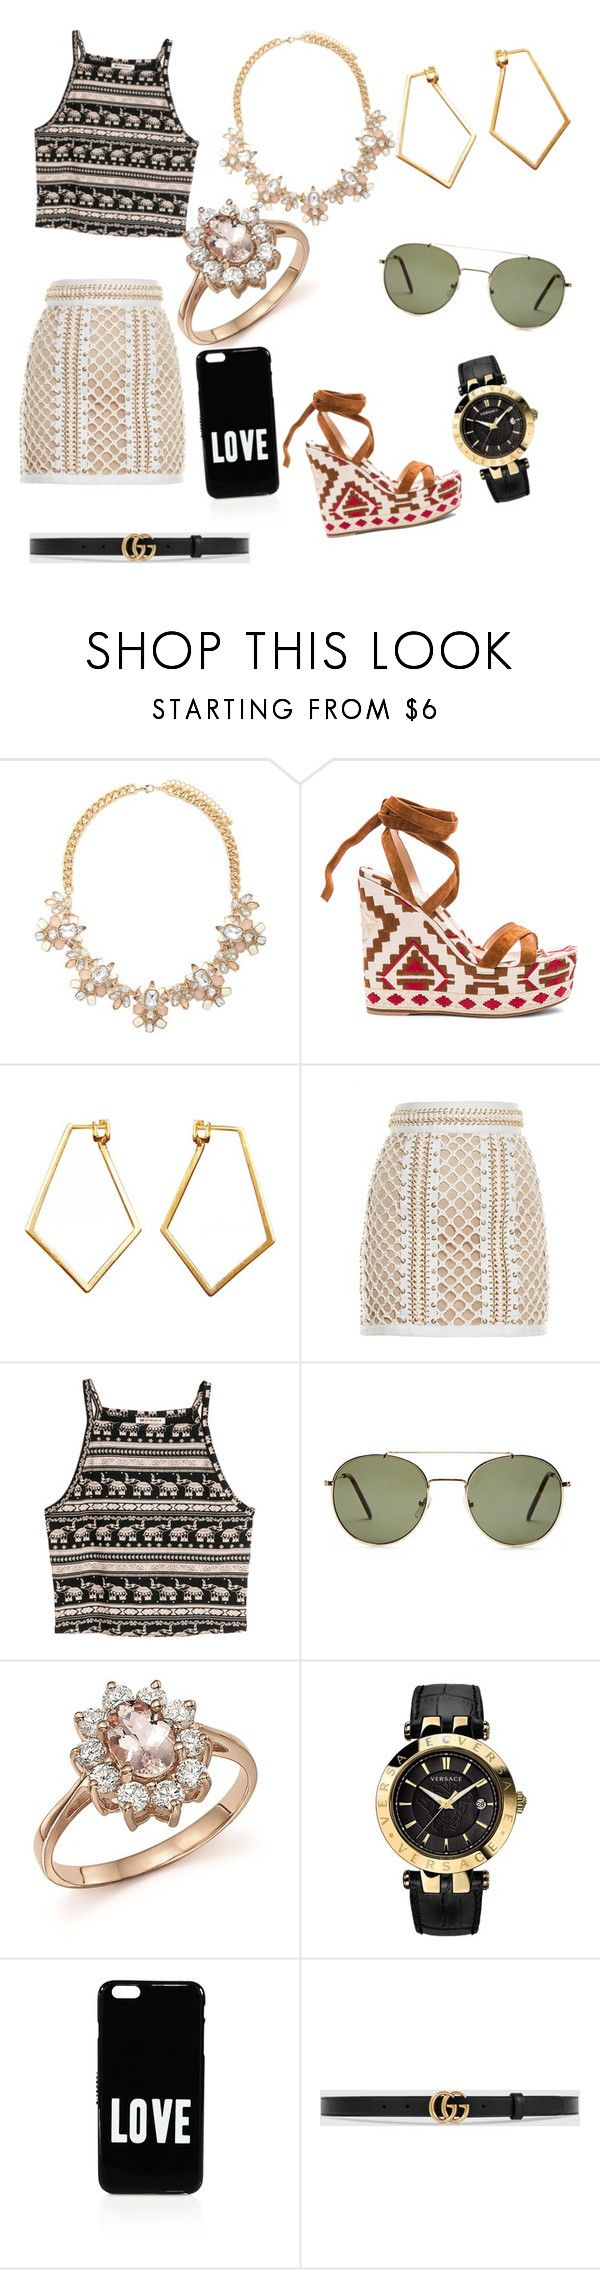 """Black And Gold : High school freshmen first party ( part 2)"" by zebragirl1449 ❤ liked on Polyvore featuring Forever 21, Gianvito Rossi, Dutch Basics, Balmain, H&M, Bloomingdale's, Versace, Givenchy and Gucci"